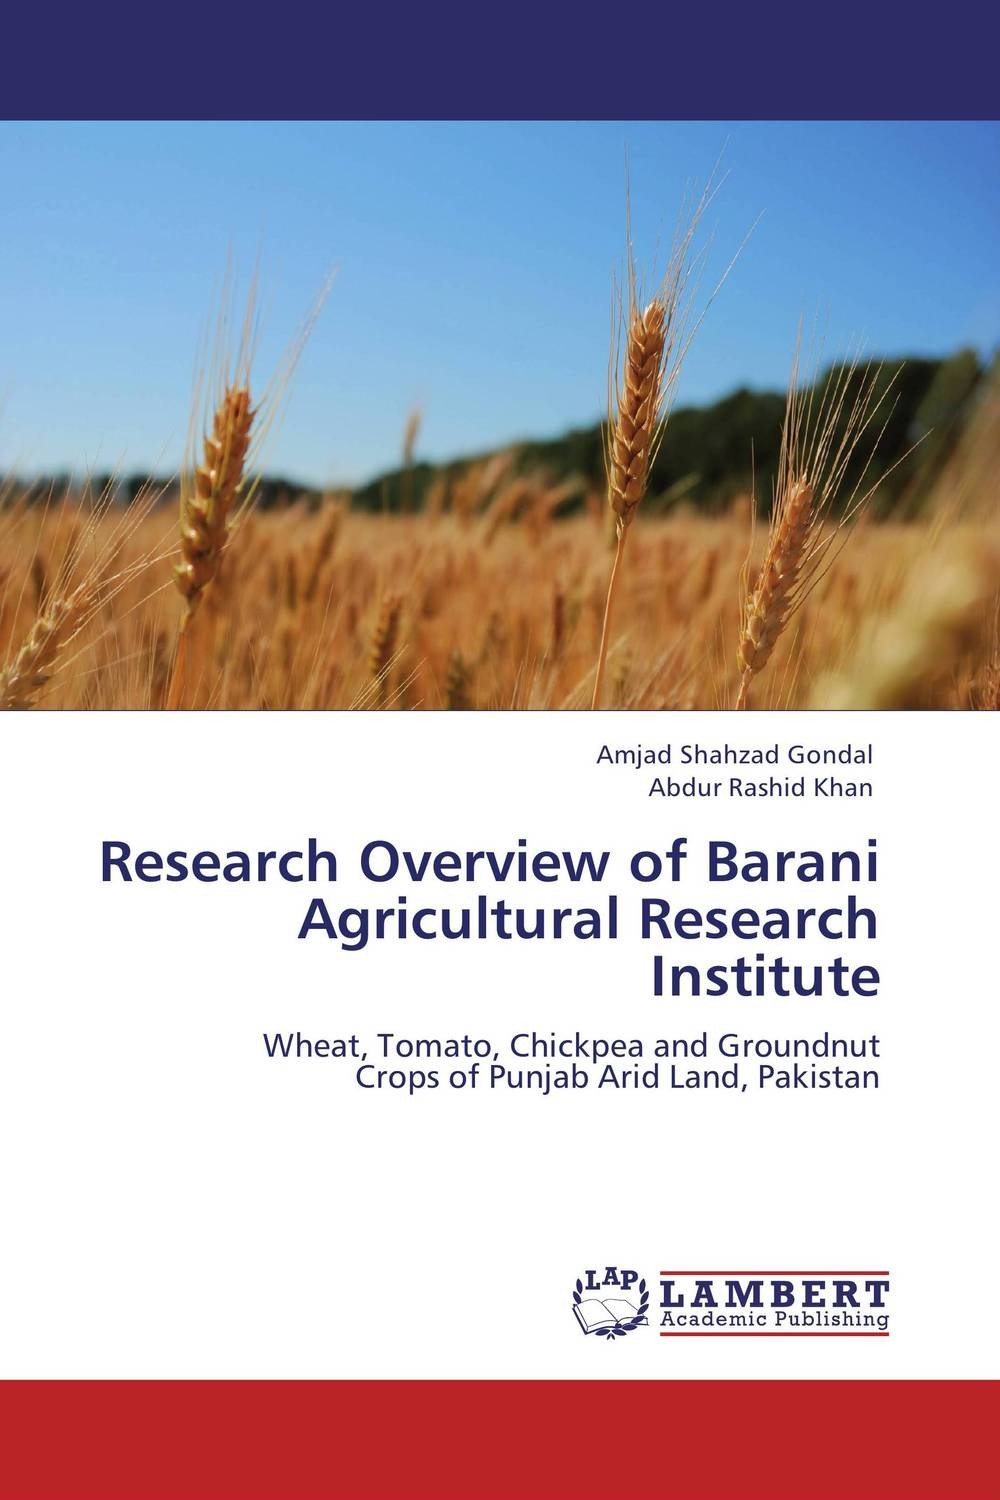 Research Overview of Barani Agricultural Research Institute